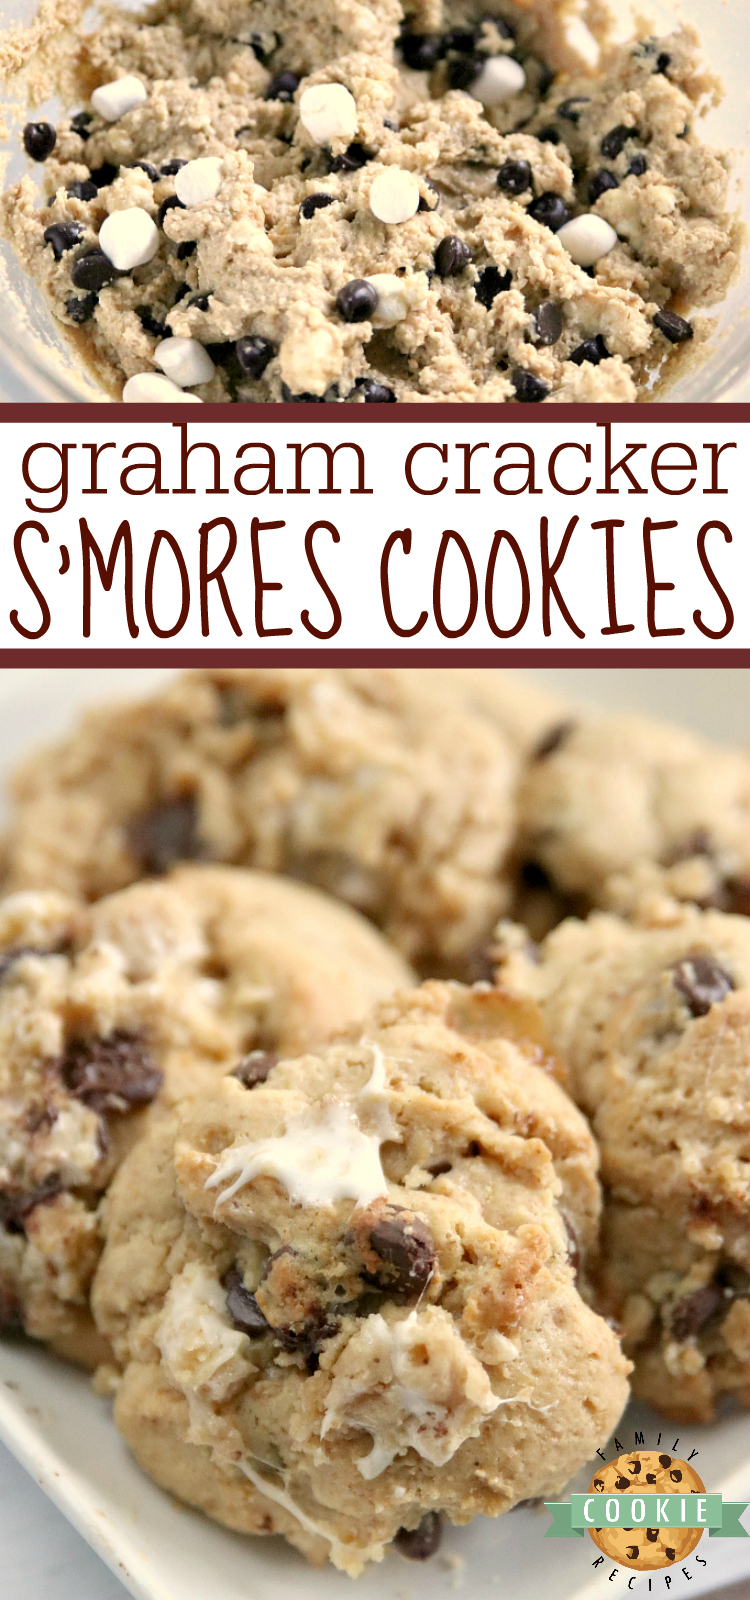 Graham Cracker S'mores Cookies are made with graham cracker crumbs, marshmallows and chocolate chips. All of the elements of a s'more in a deliciously soft and chewy cookie recipe!